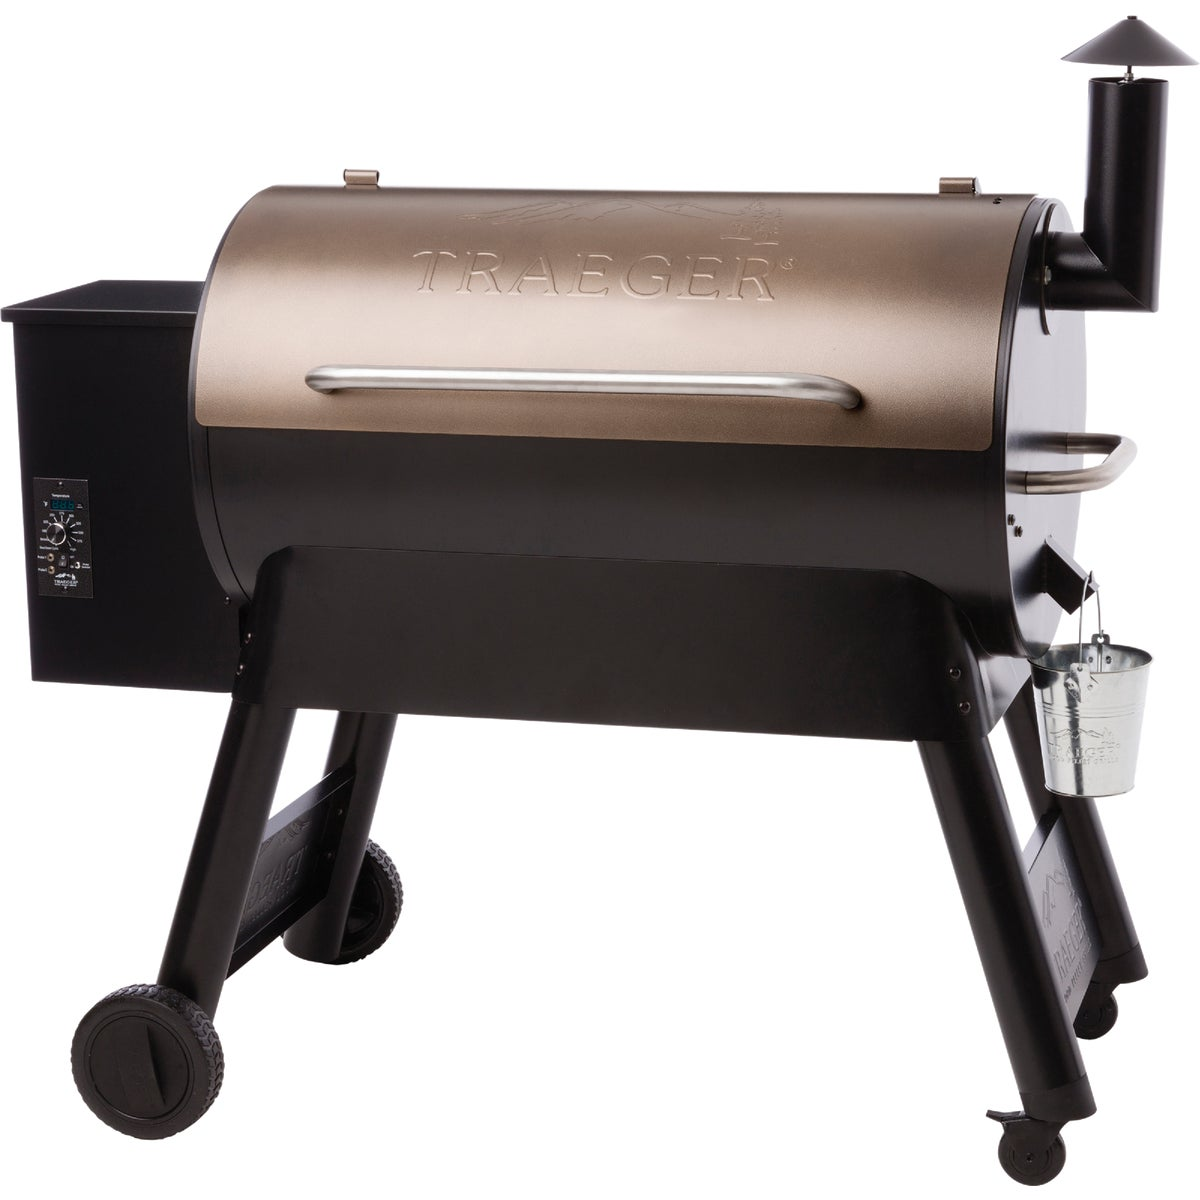 TEXAS ELITE GRILL - BBQ075 by Traeger Industries